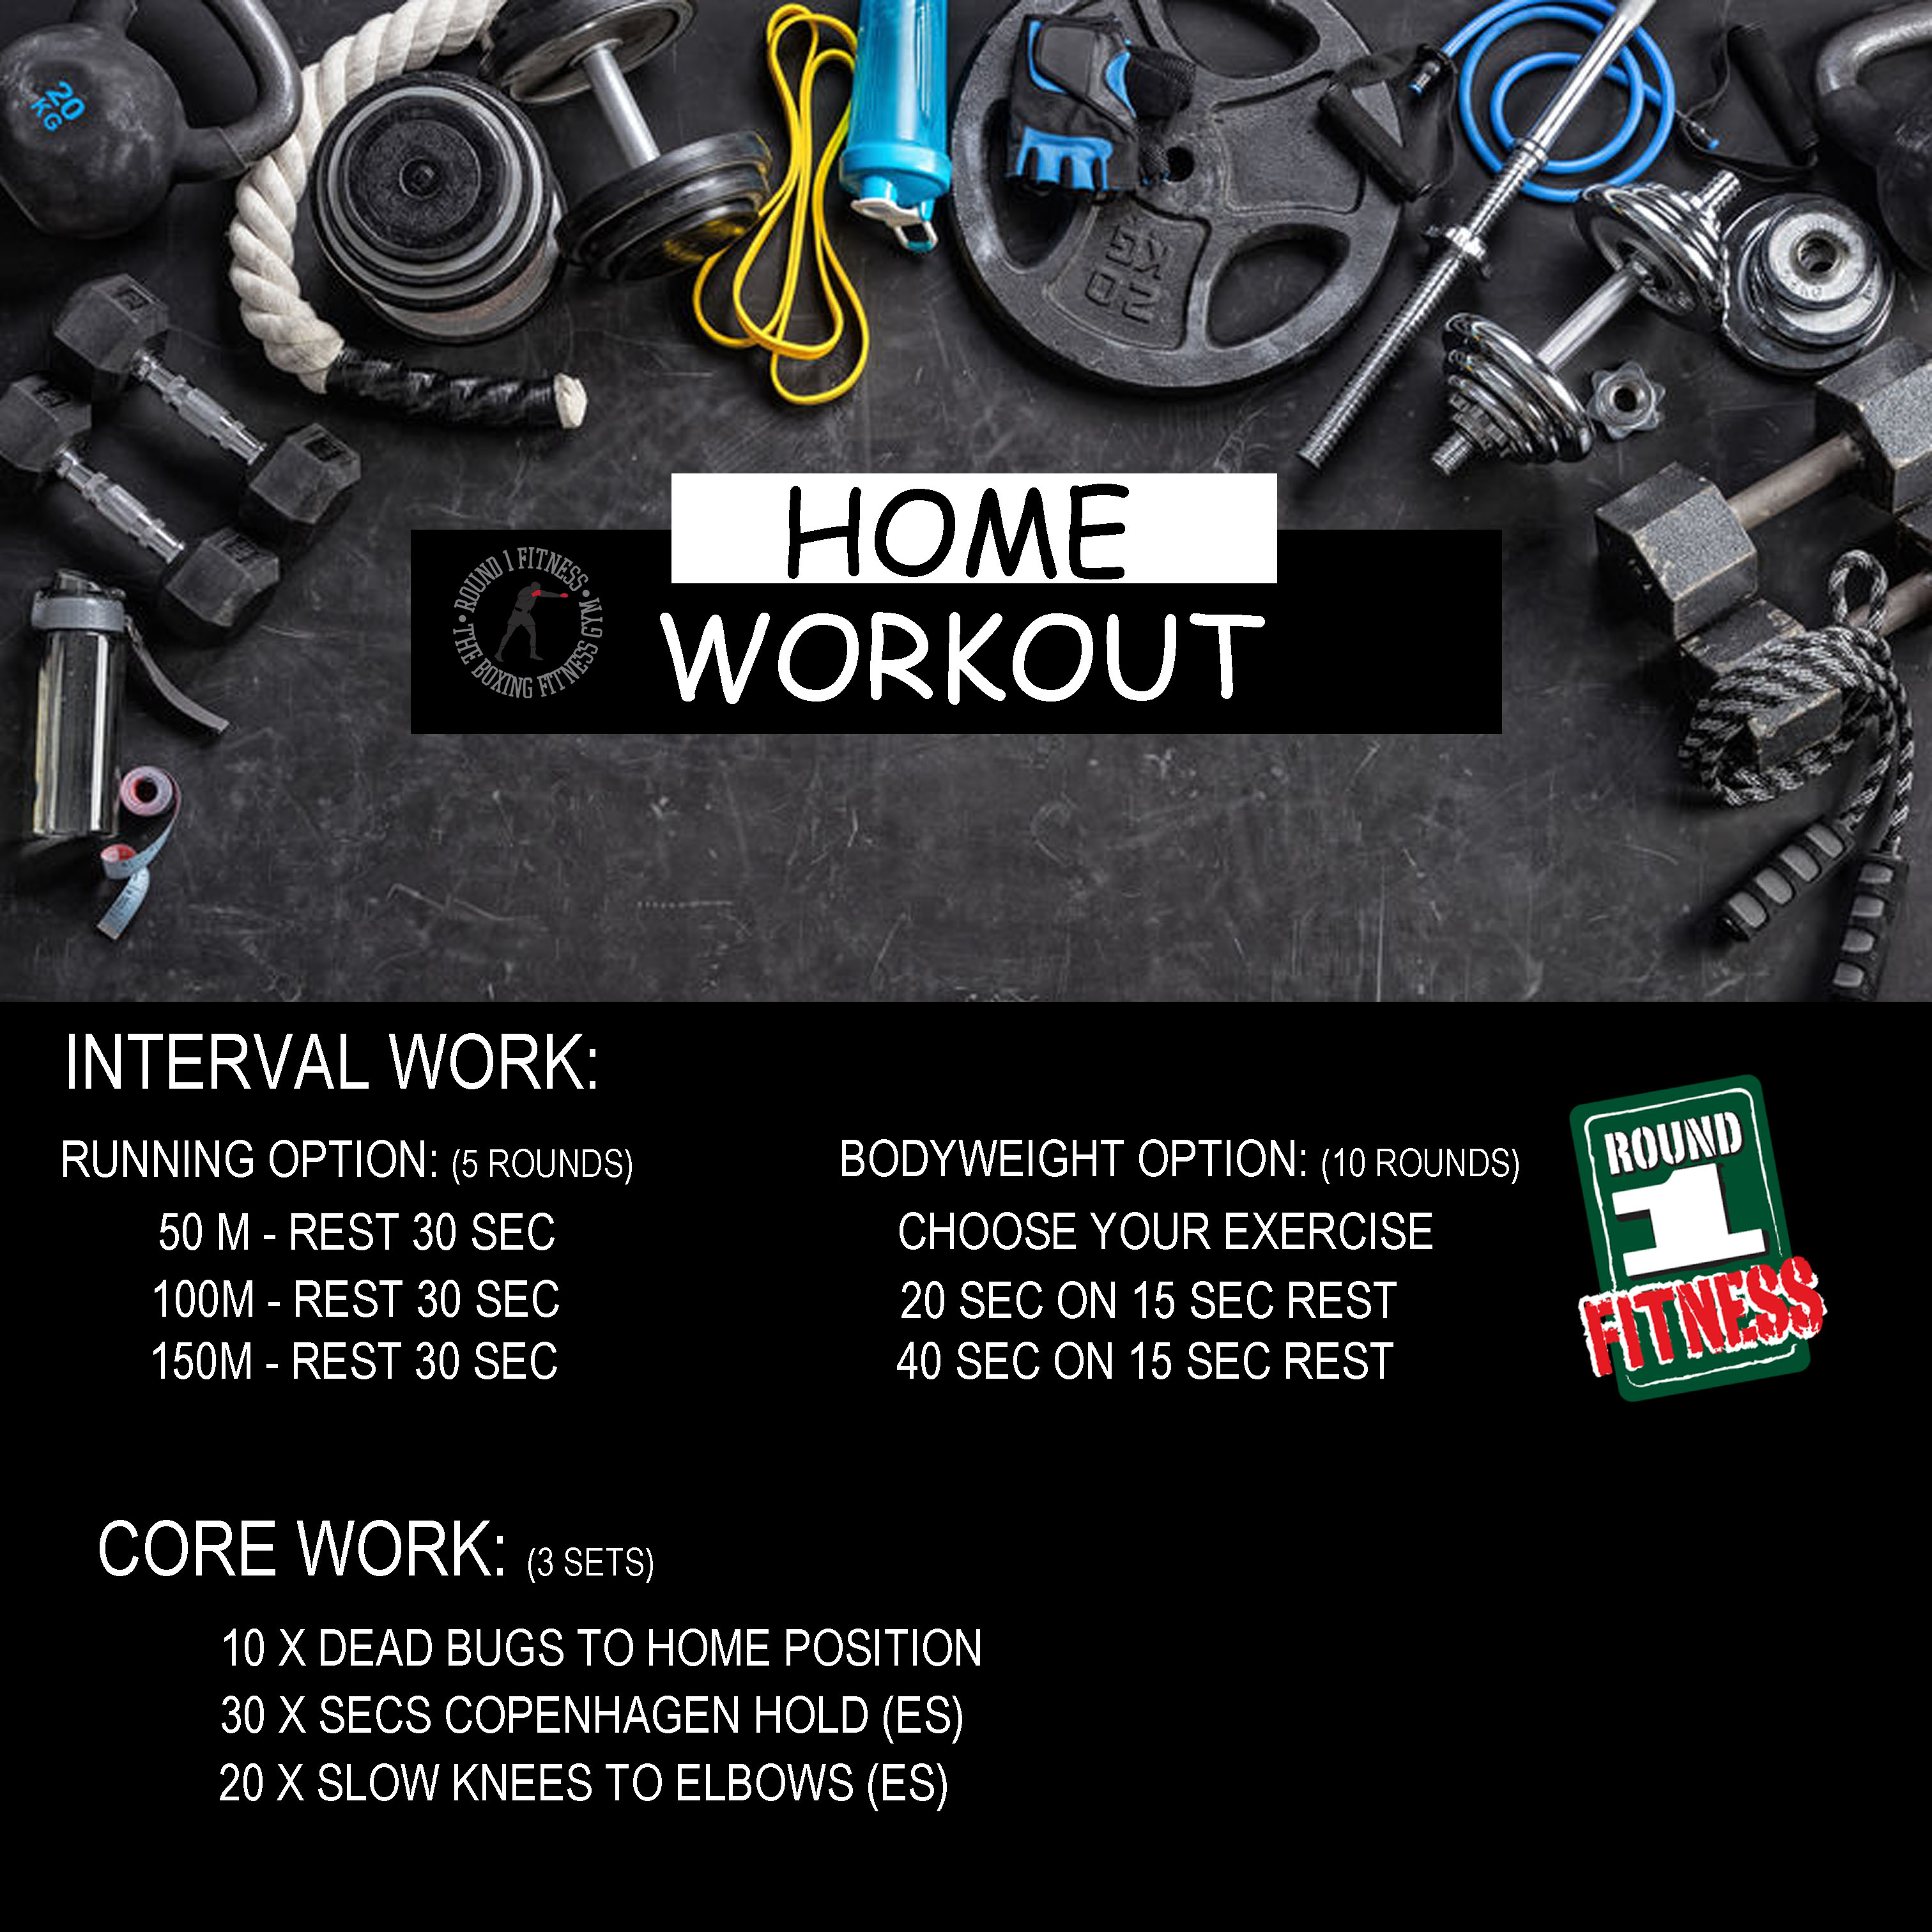 COVID Lockdown#3 – Round 1 @ Home – Workout 3, April 26th 2021